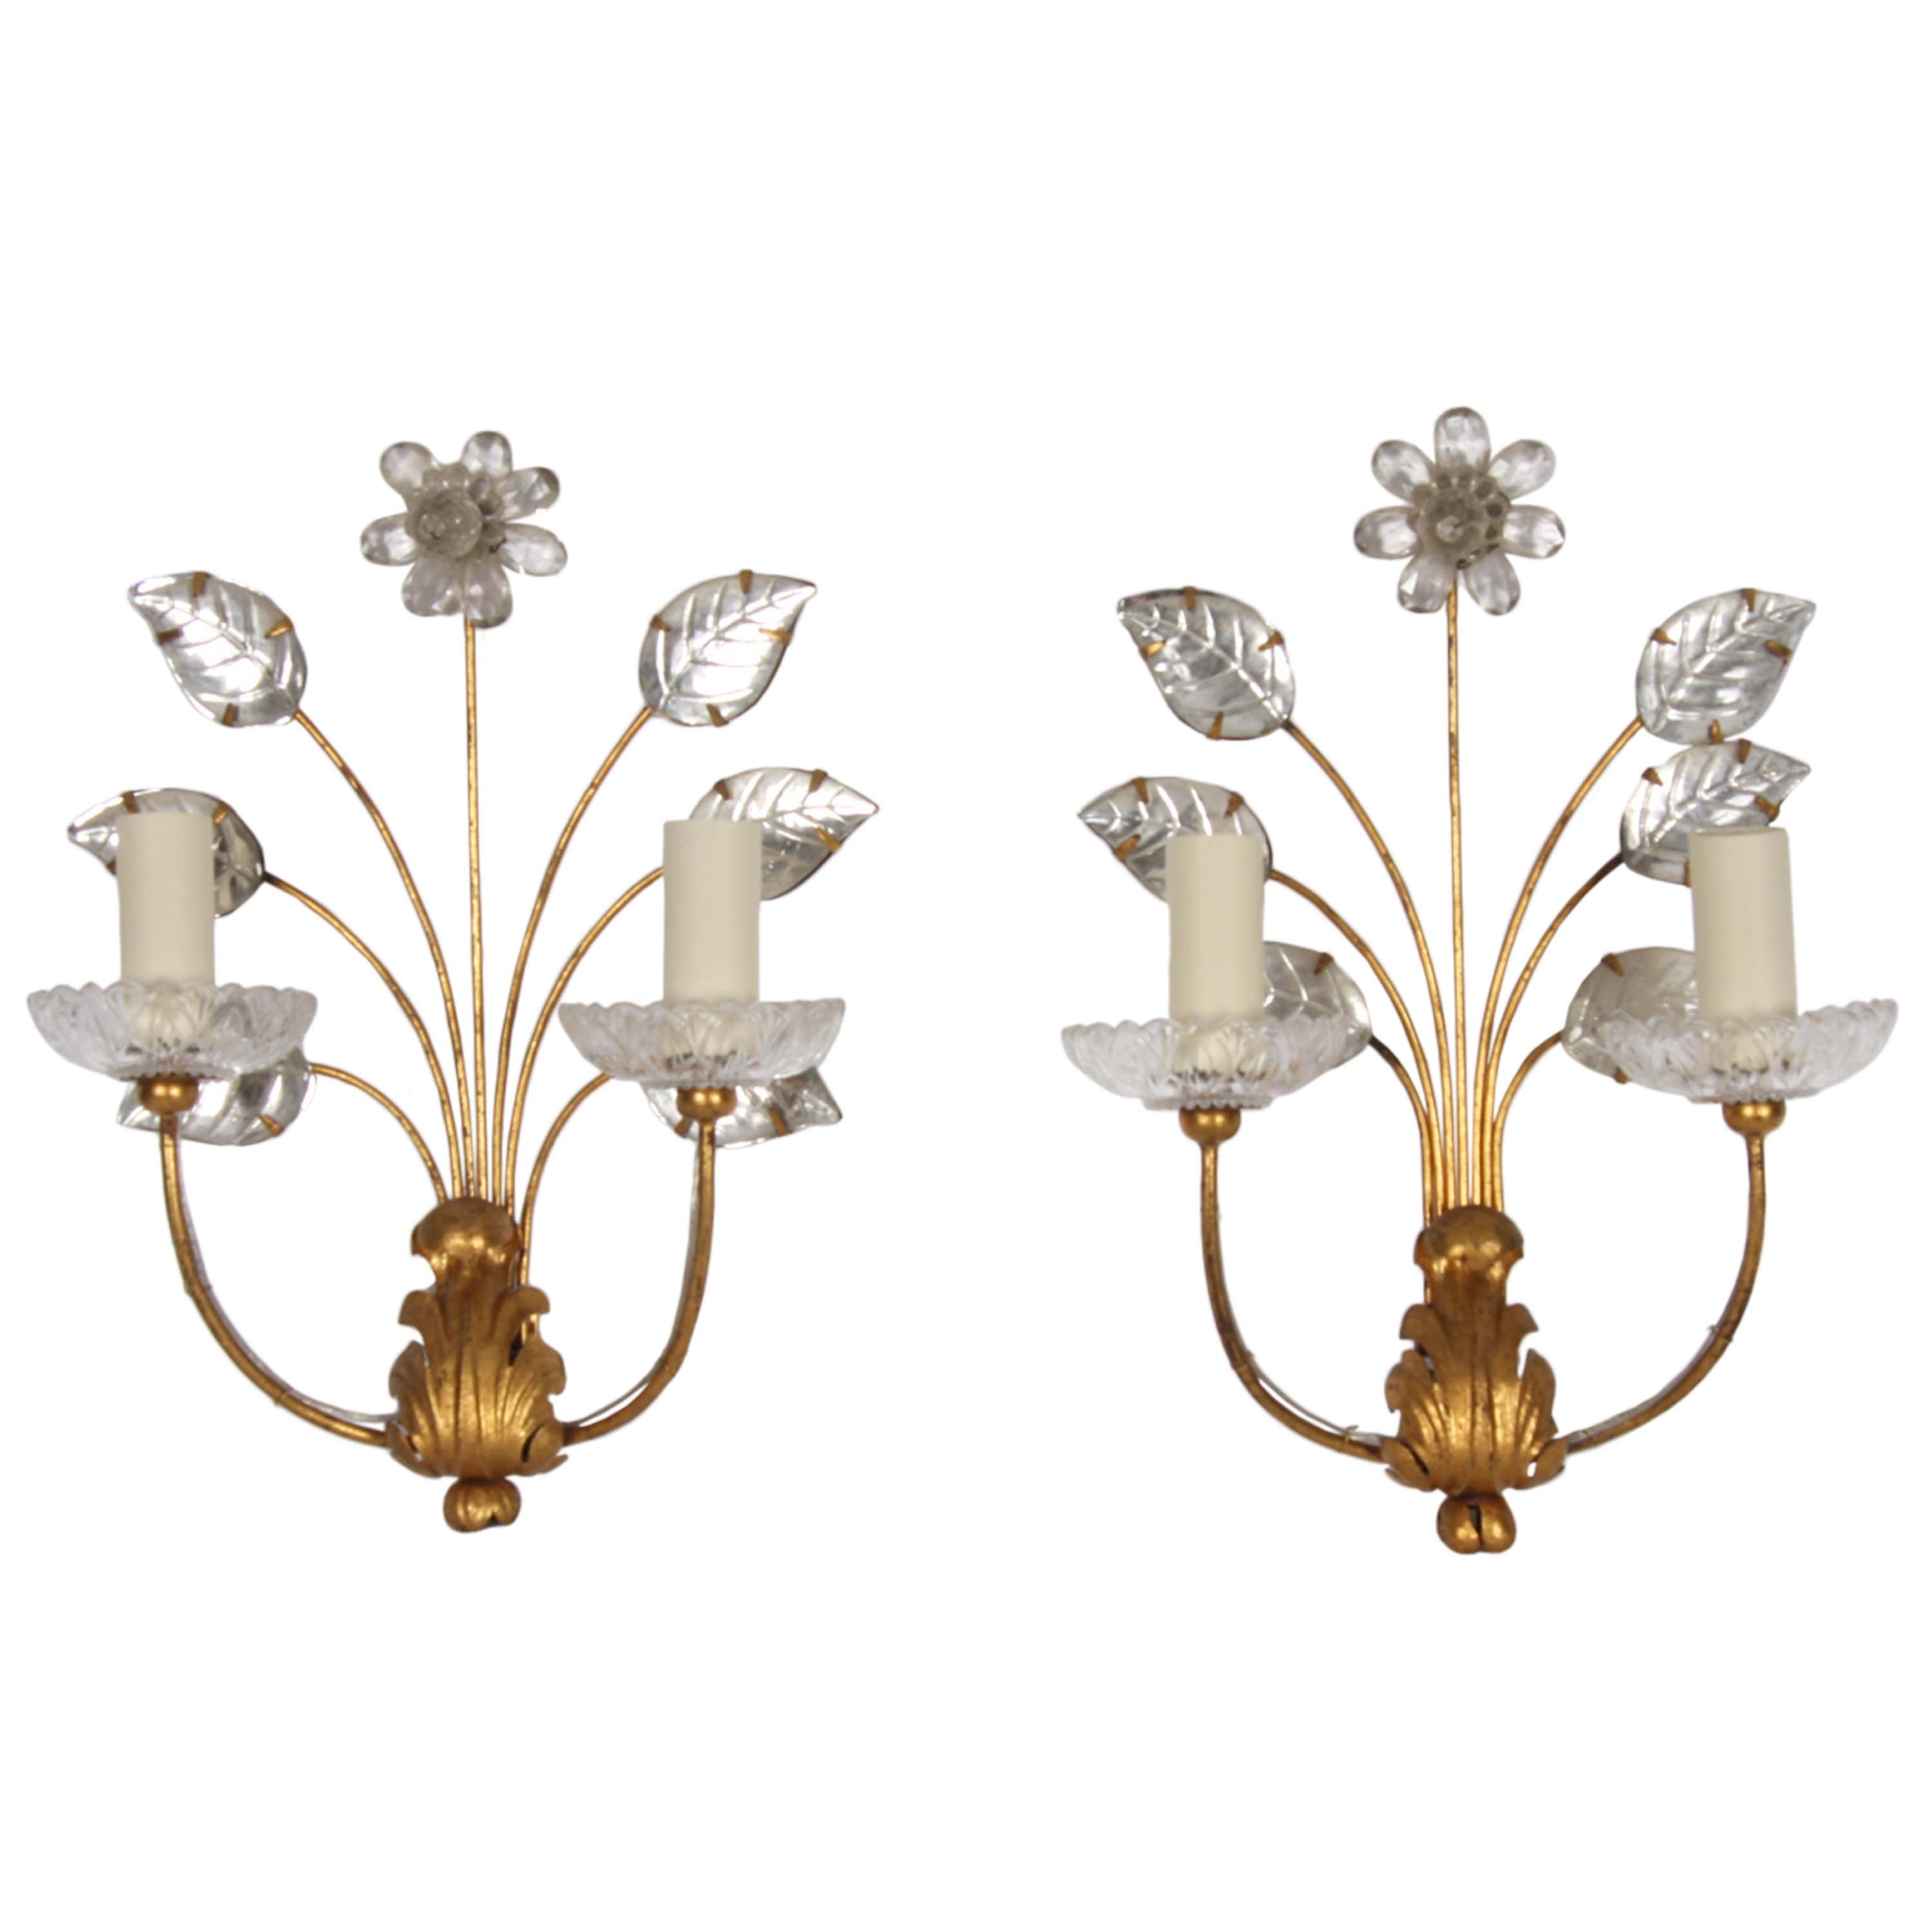 Pair Of Wall Sconces With Flowers By Maison Bagues 1950s 151249